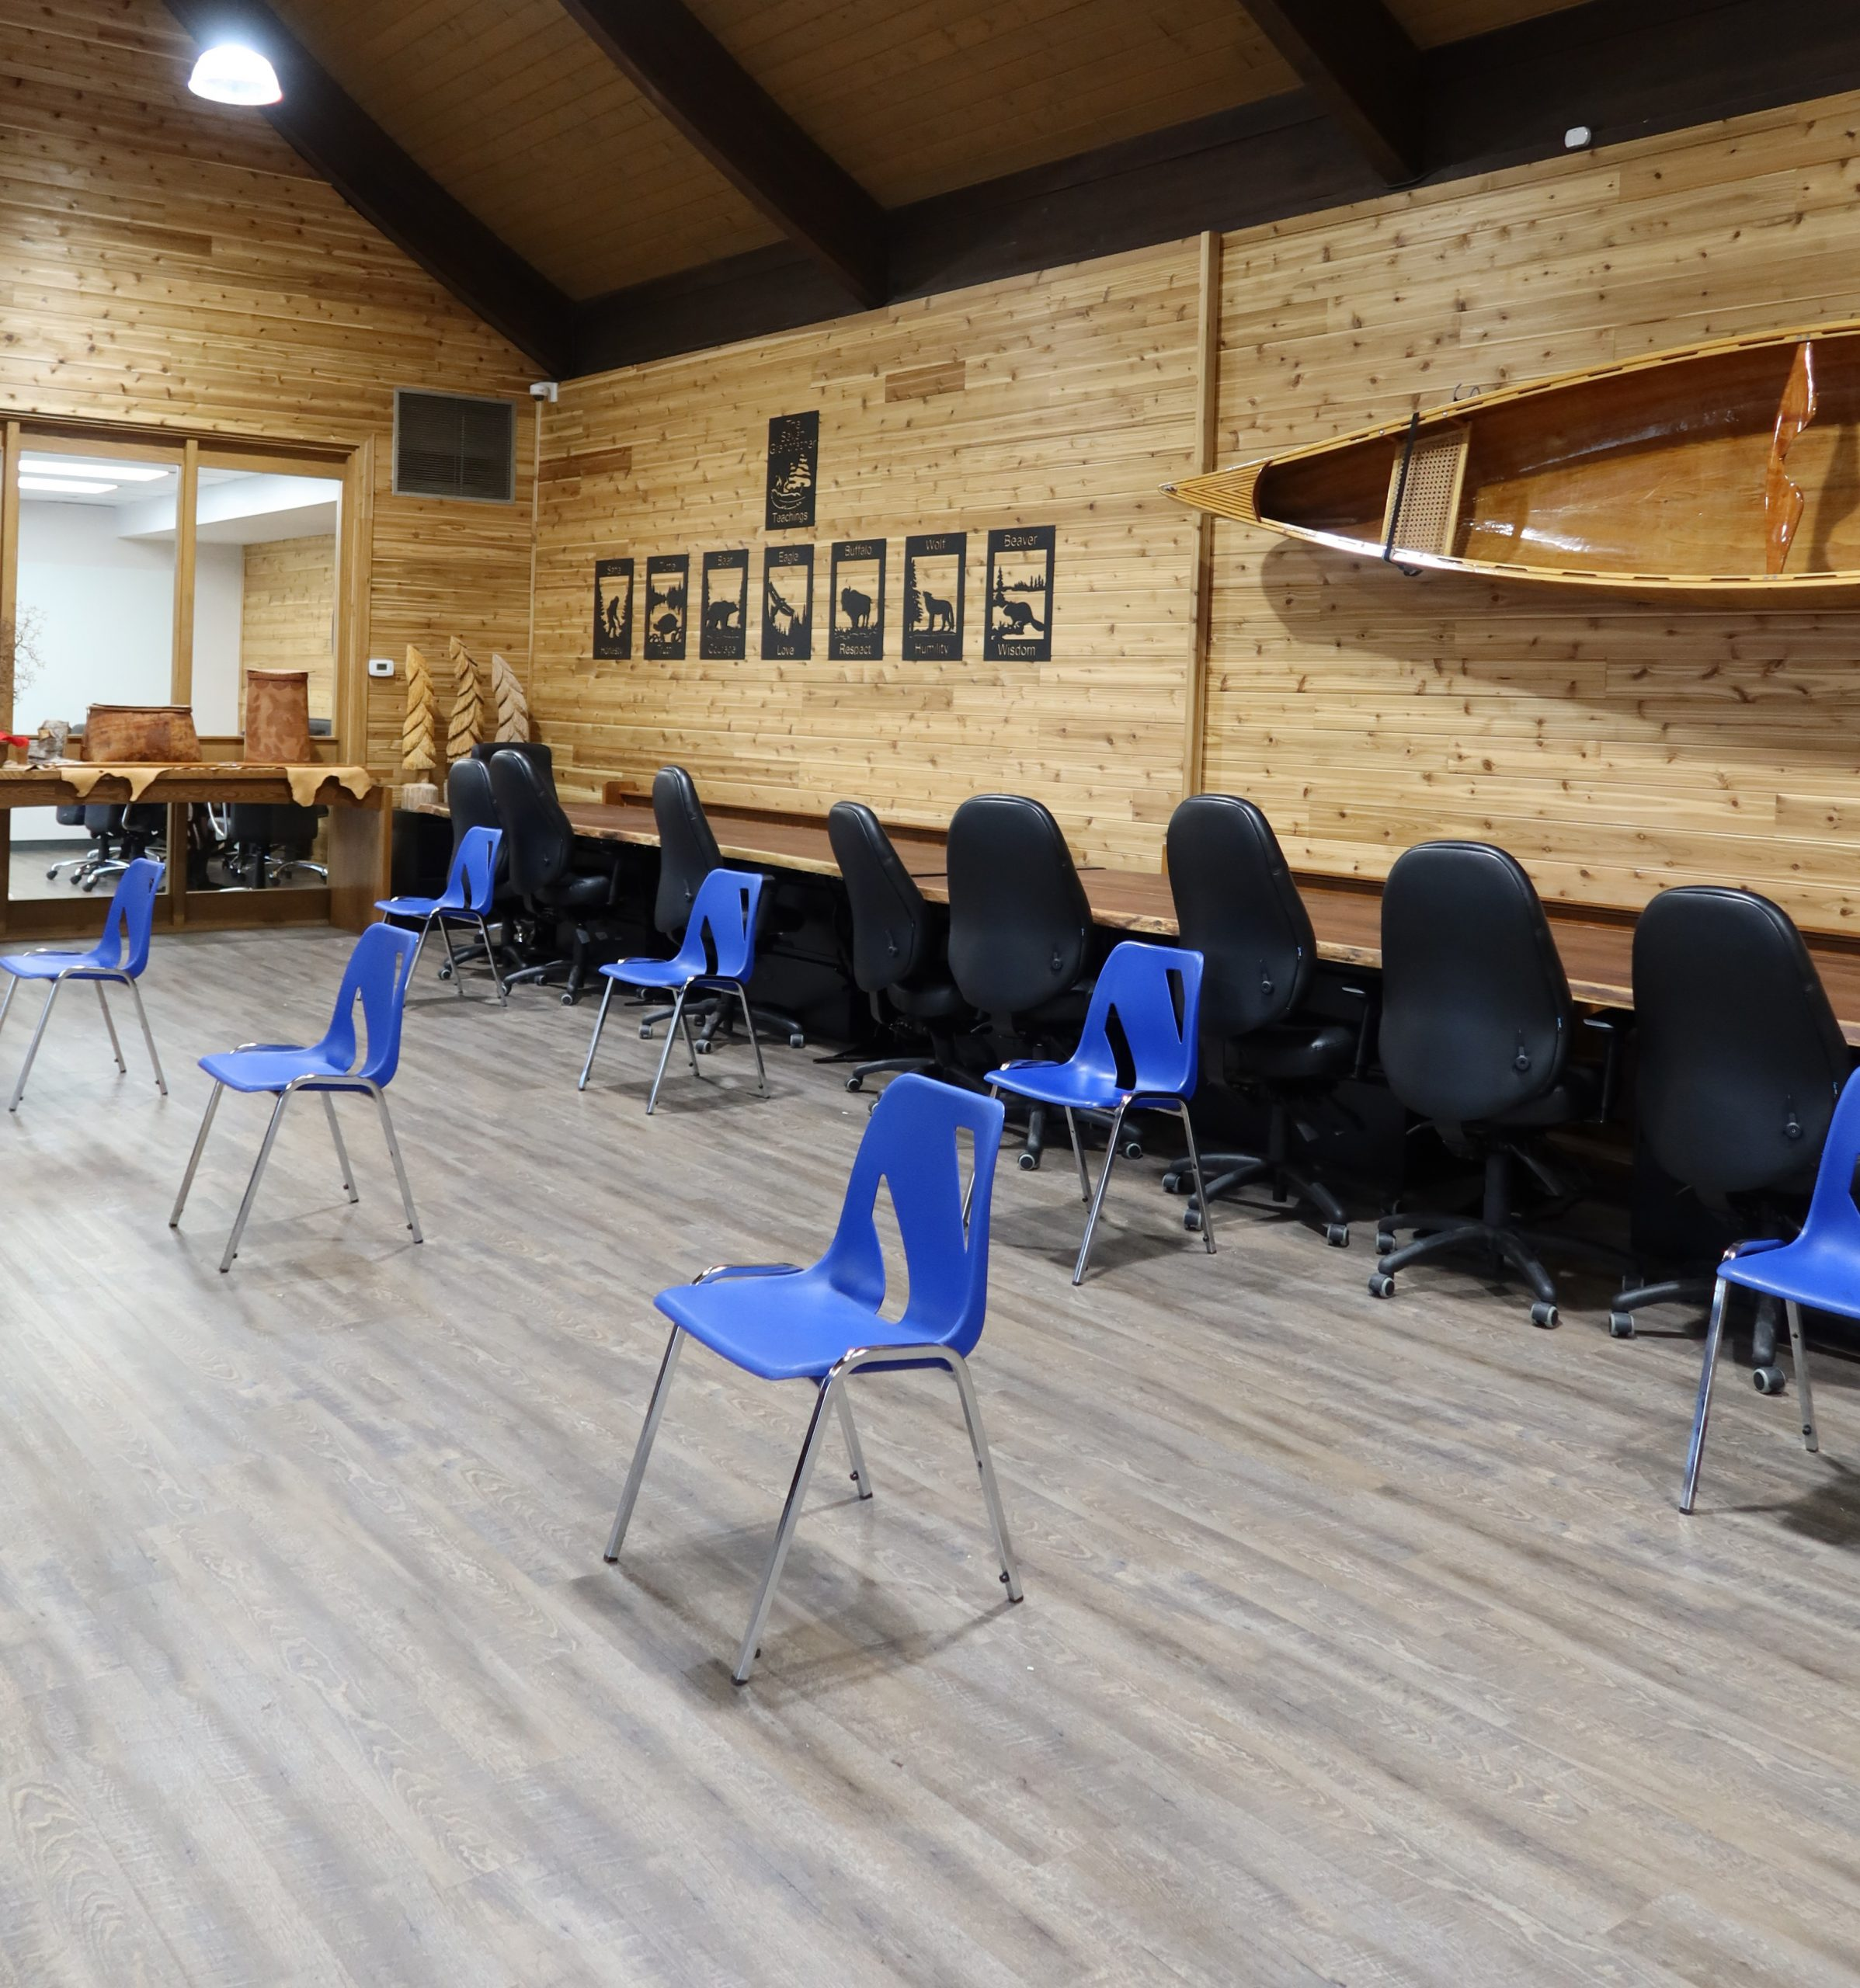 recover room for pop-up vaccine clinic with blue chairs set up six feet apart